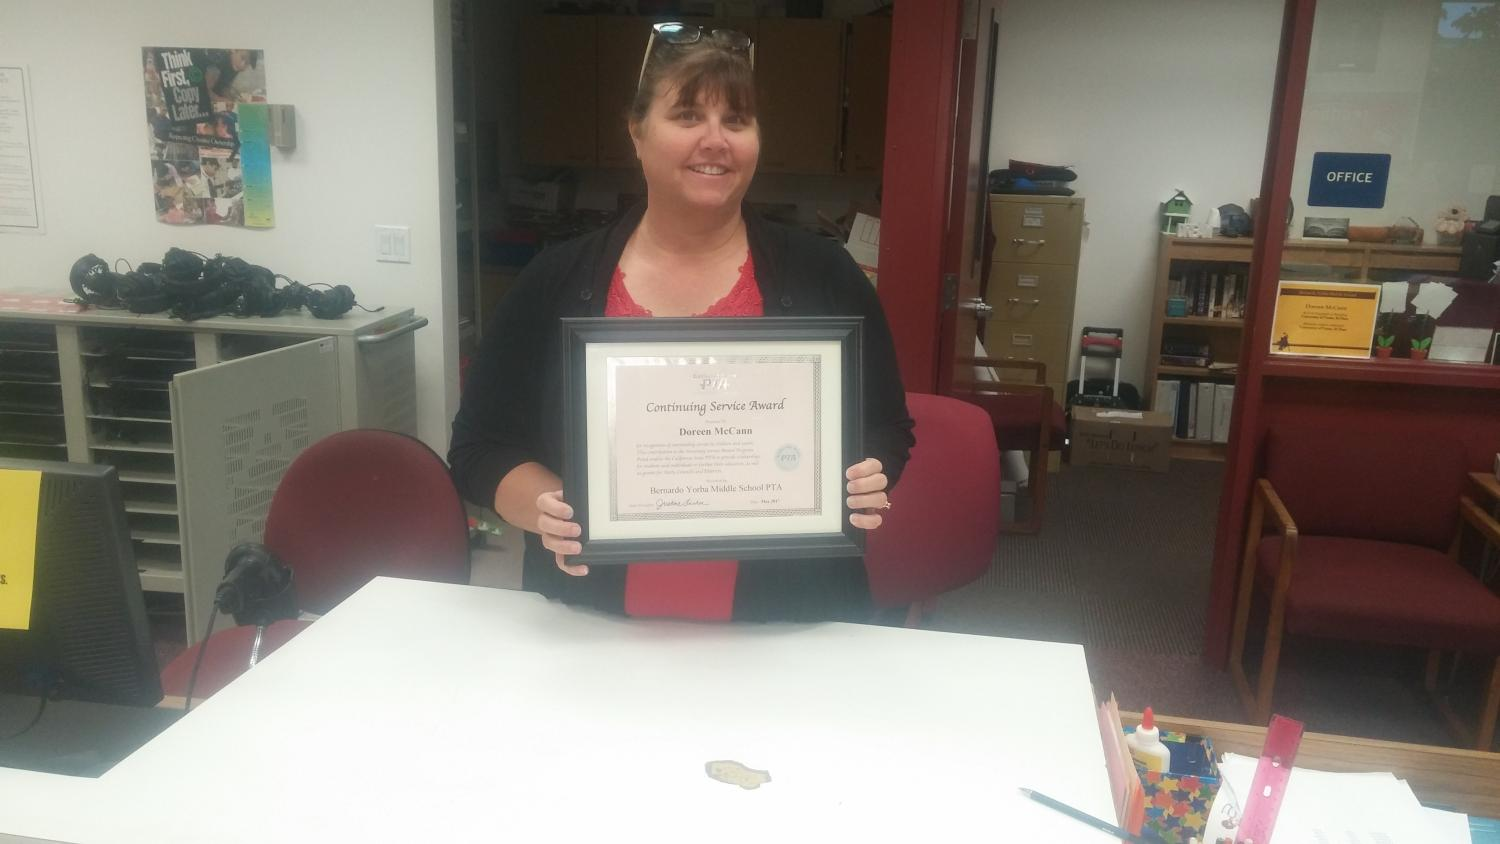 Doreen McCann holding up her 'Continuing Service Award'.